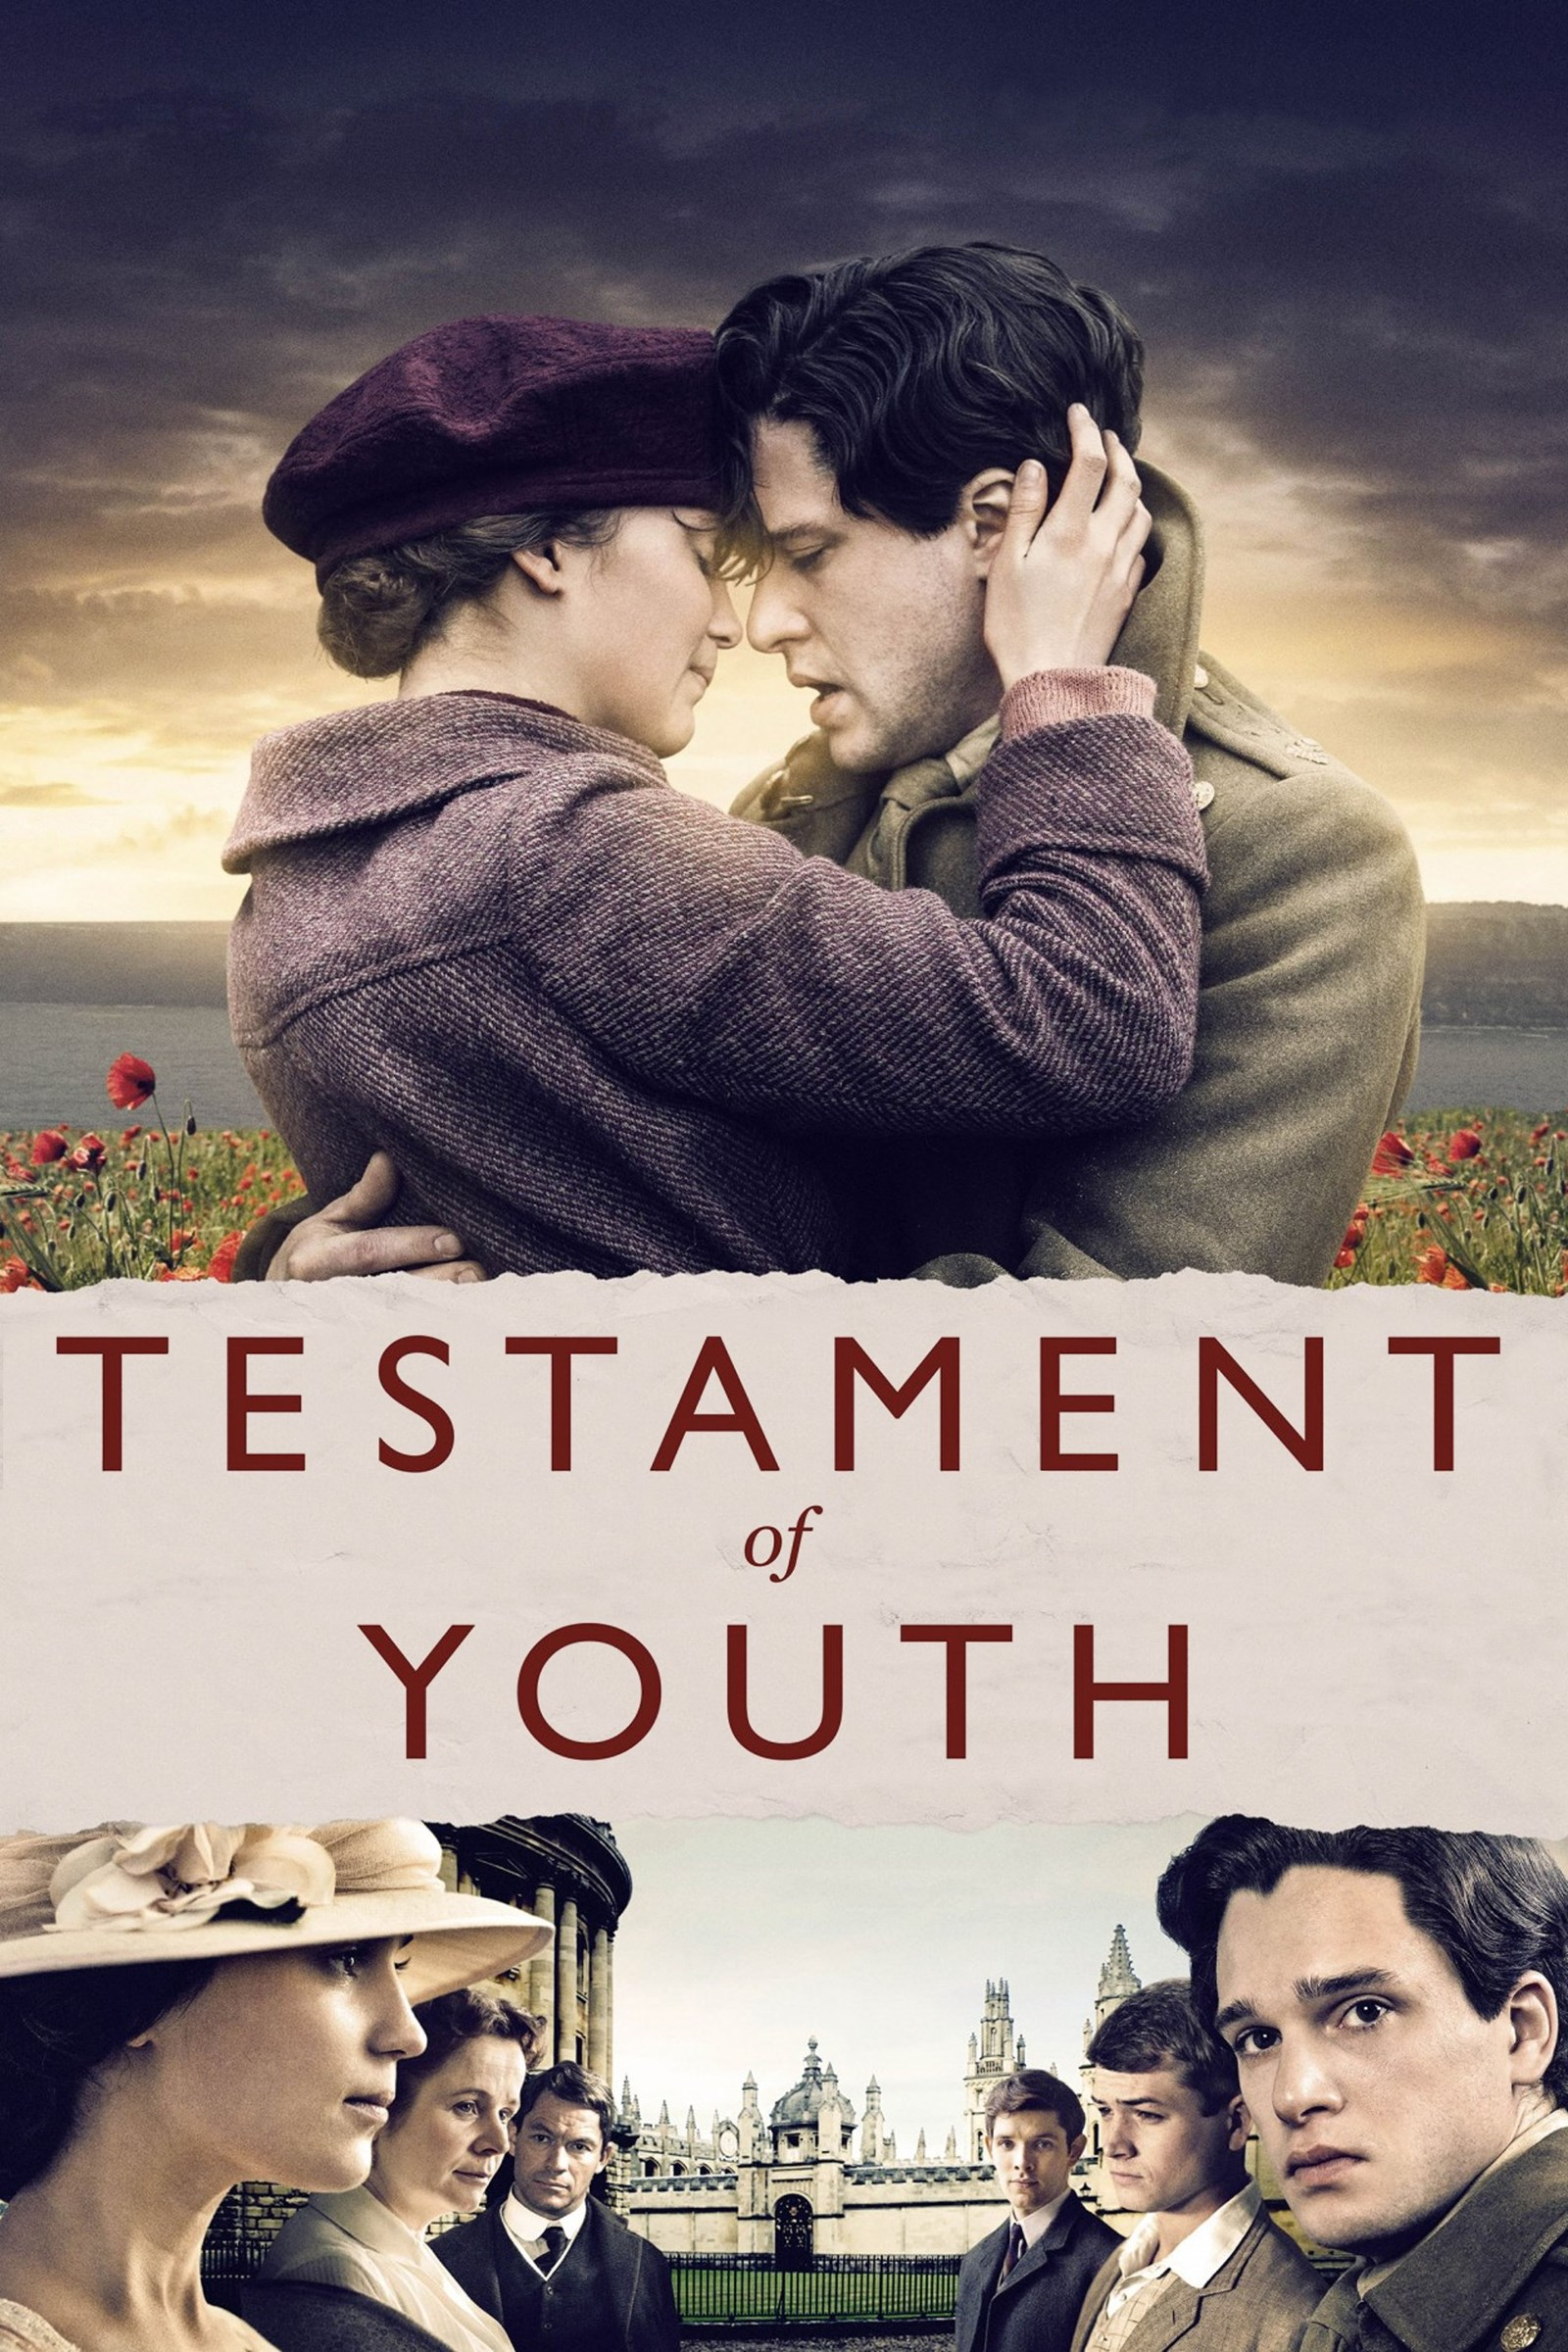 https://i.jeded.com/i/testament-of-youth.35756.jpg